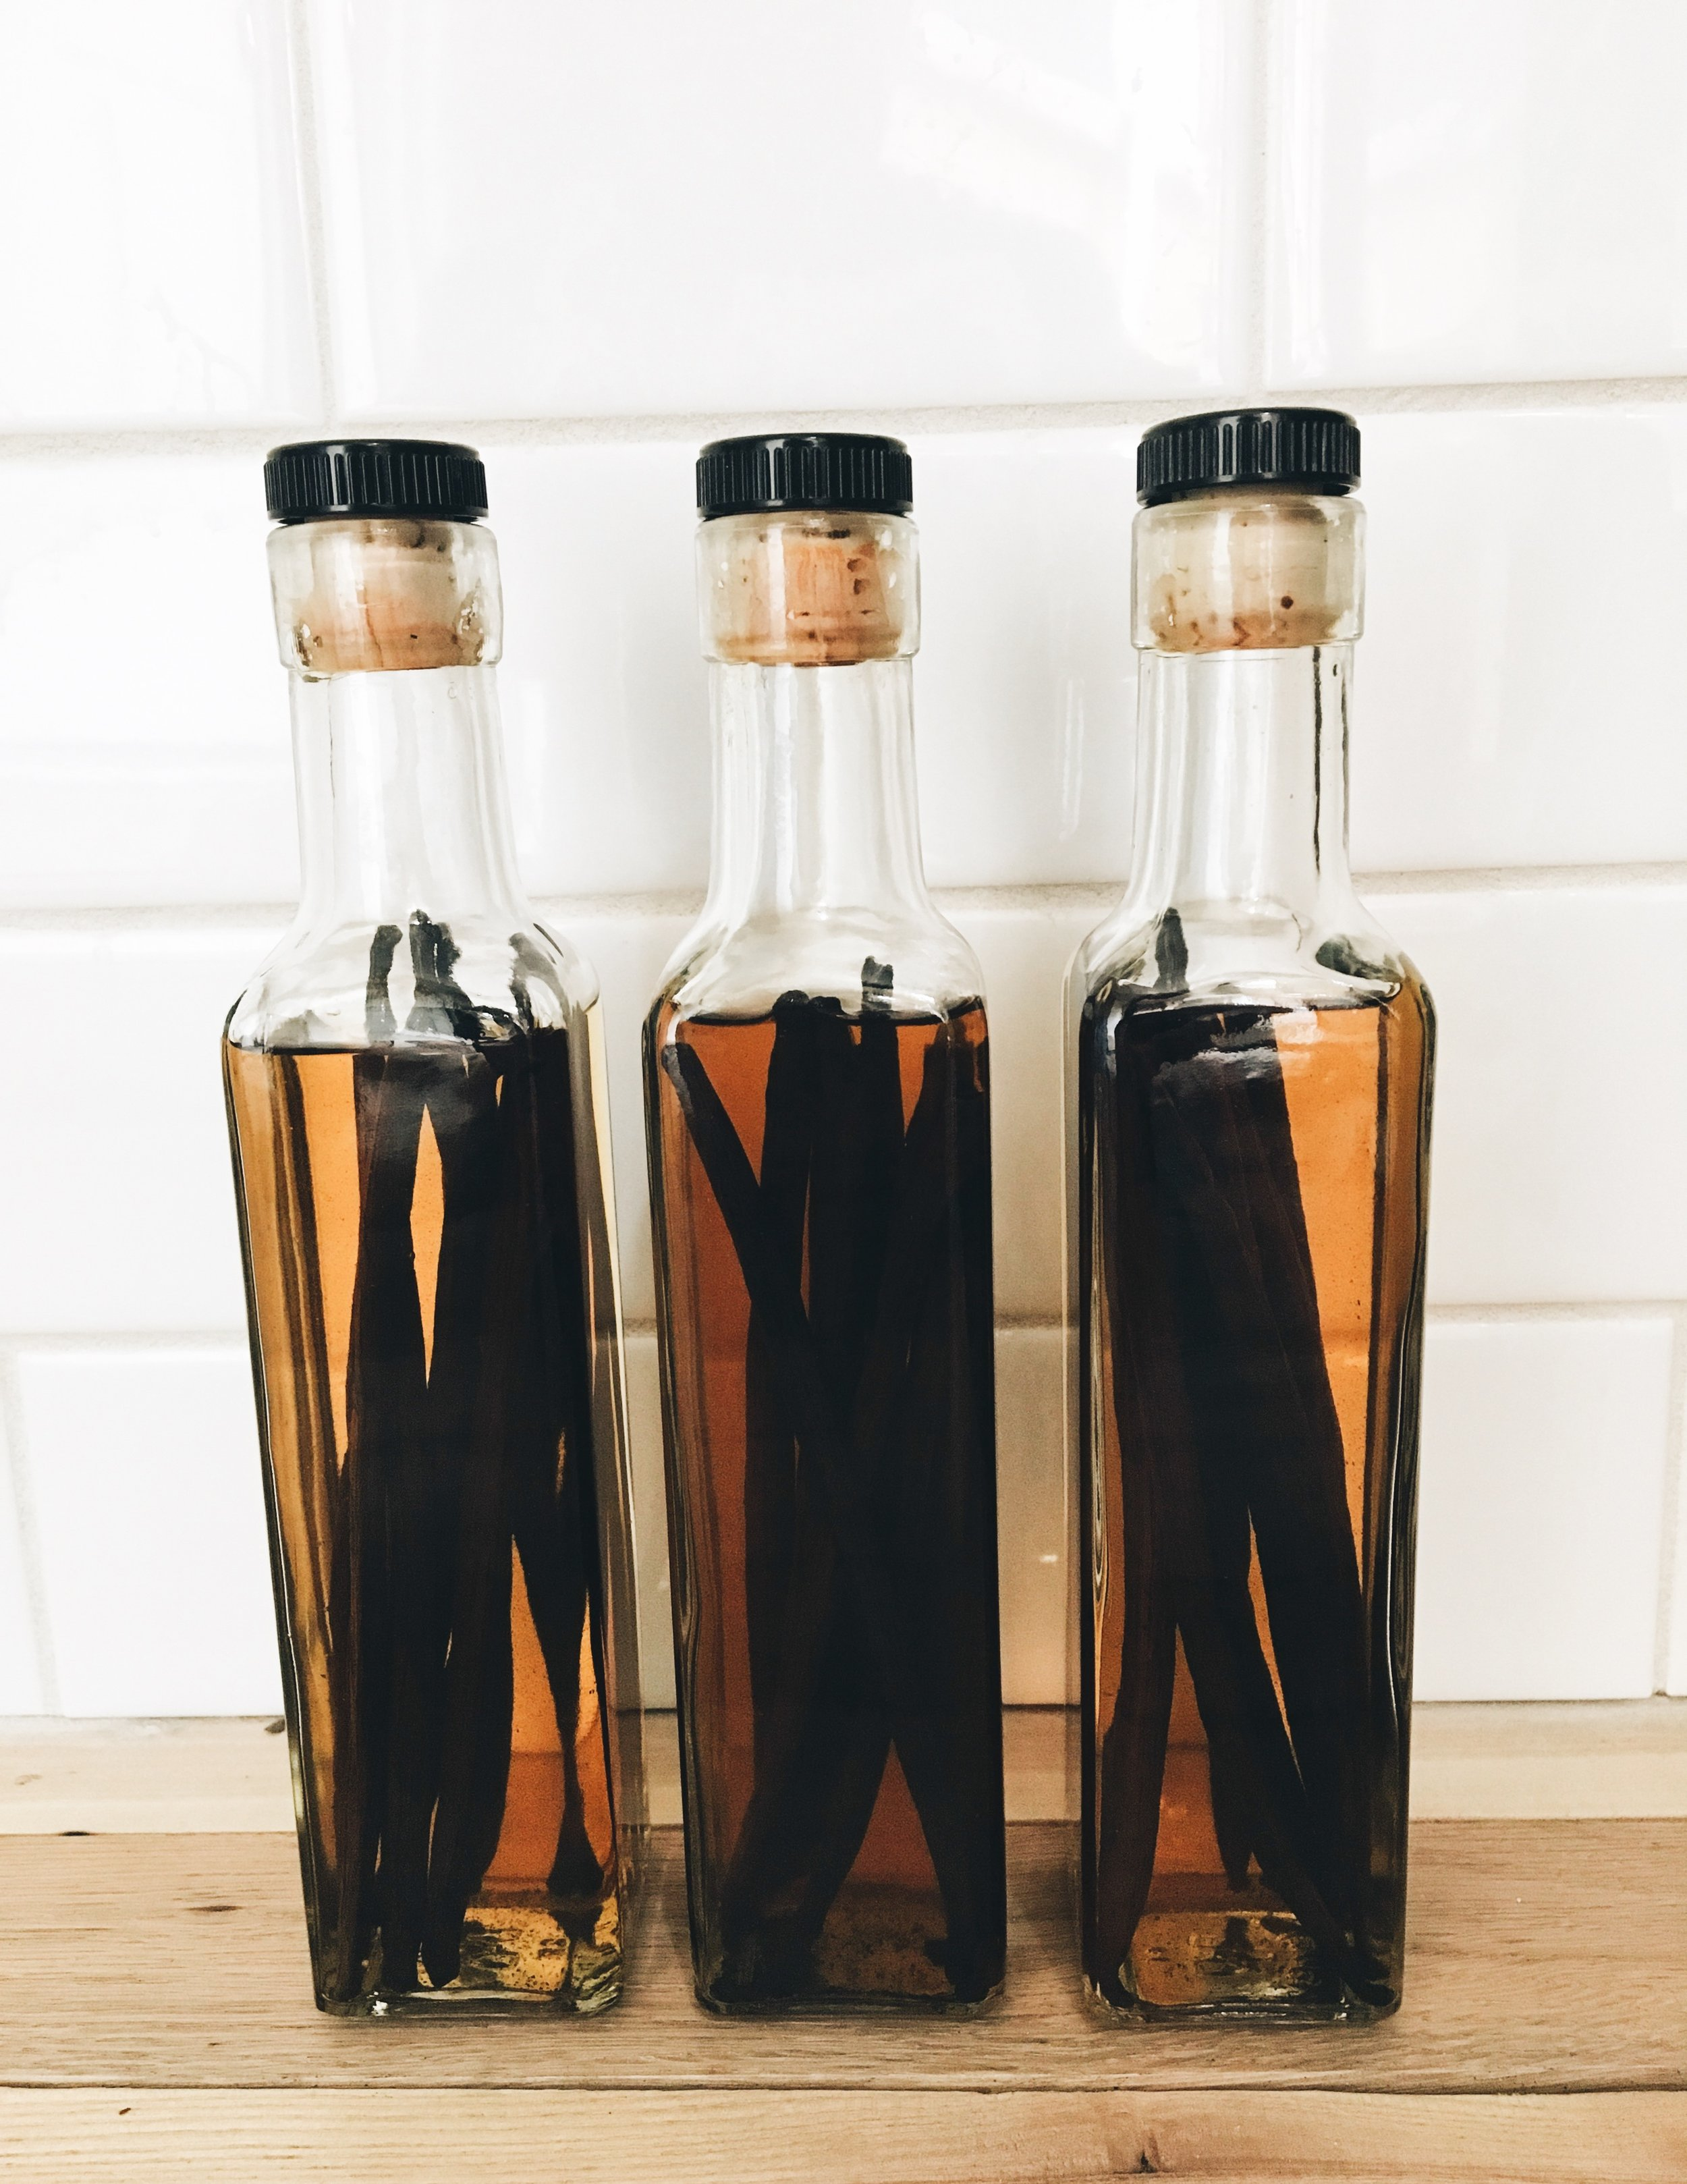 How To Make Your Own Vanilla Bean Extract - Vanilla After 4 Weeks